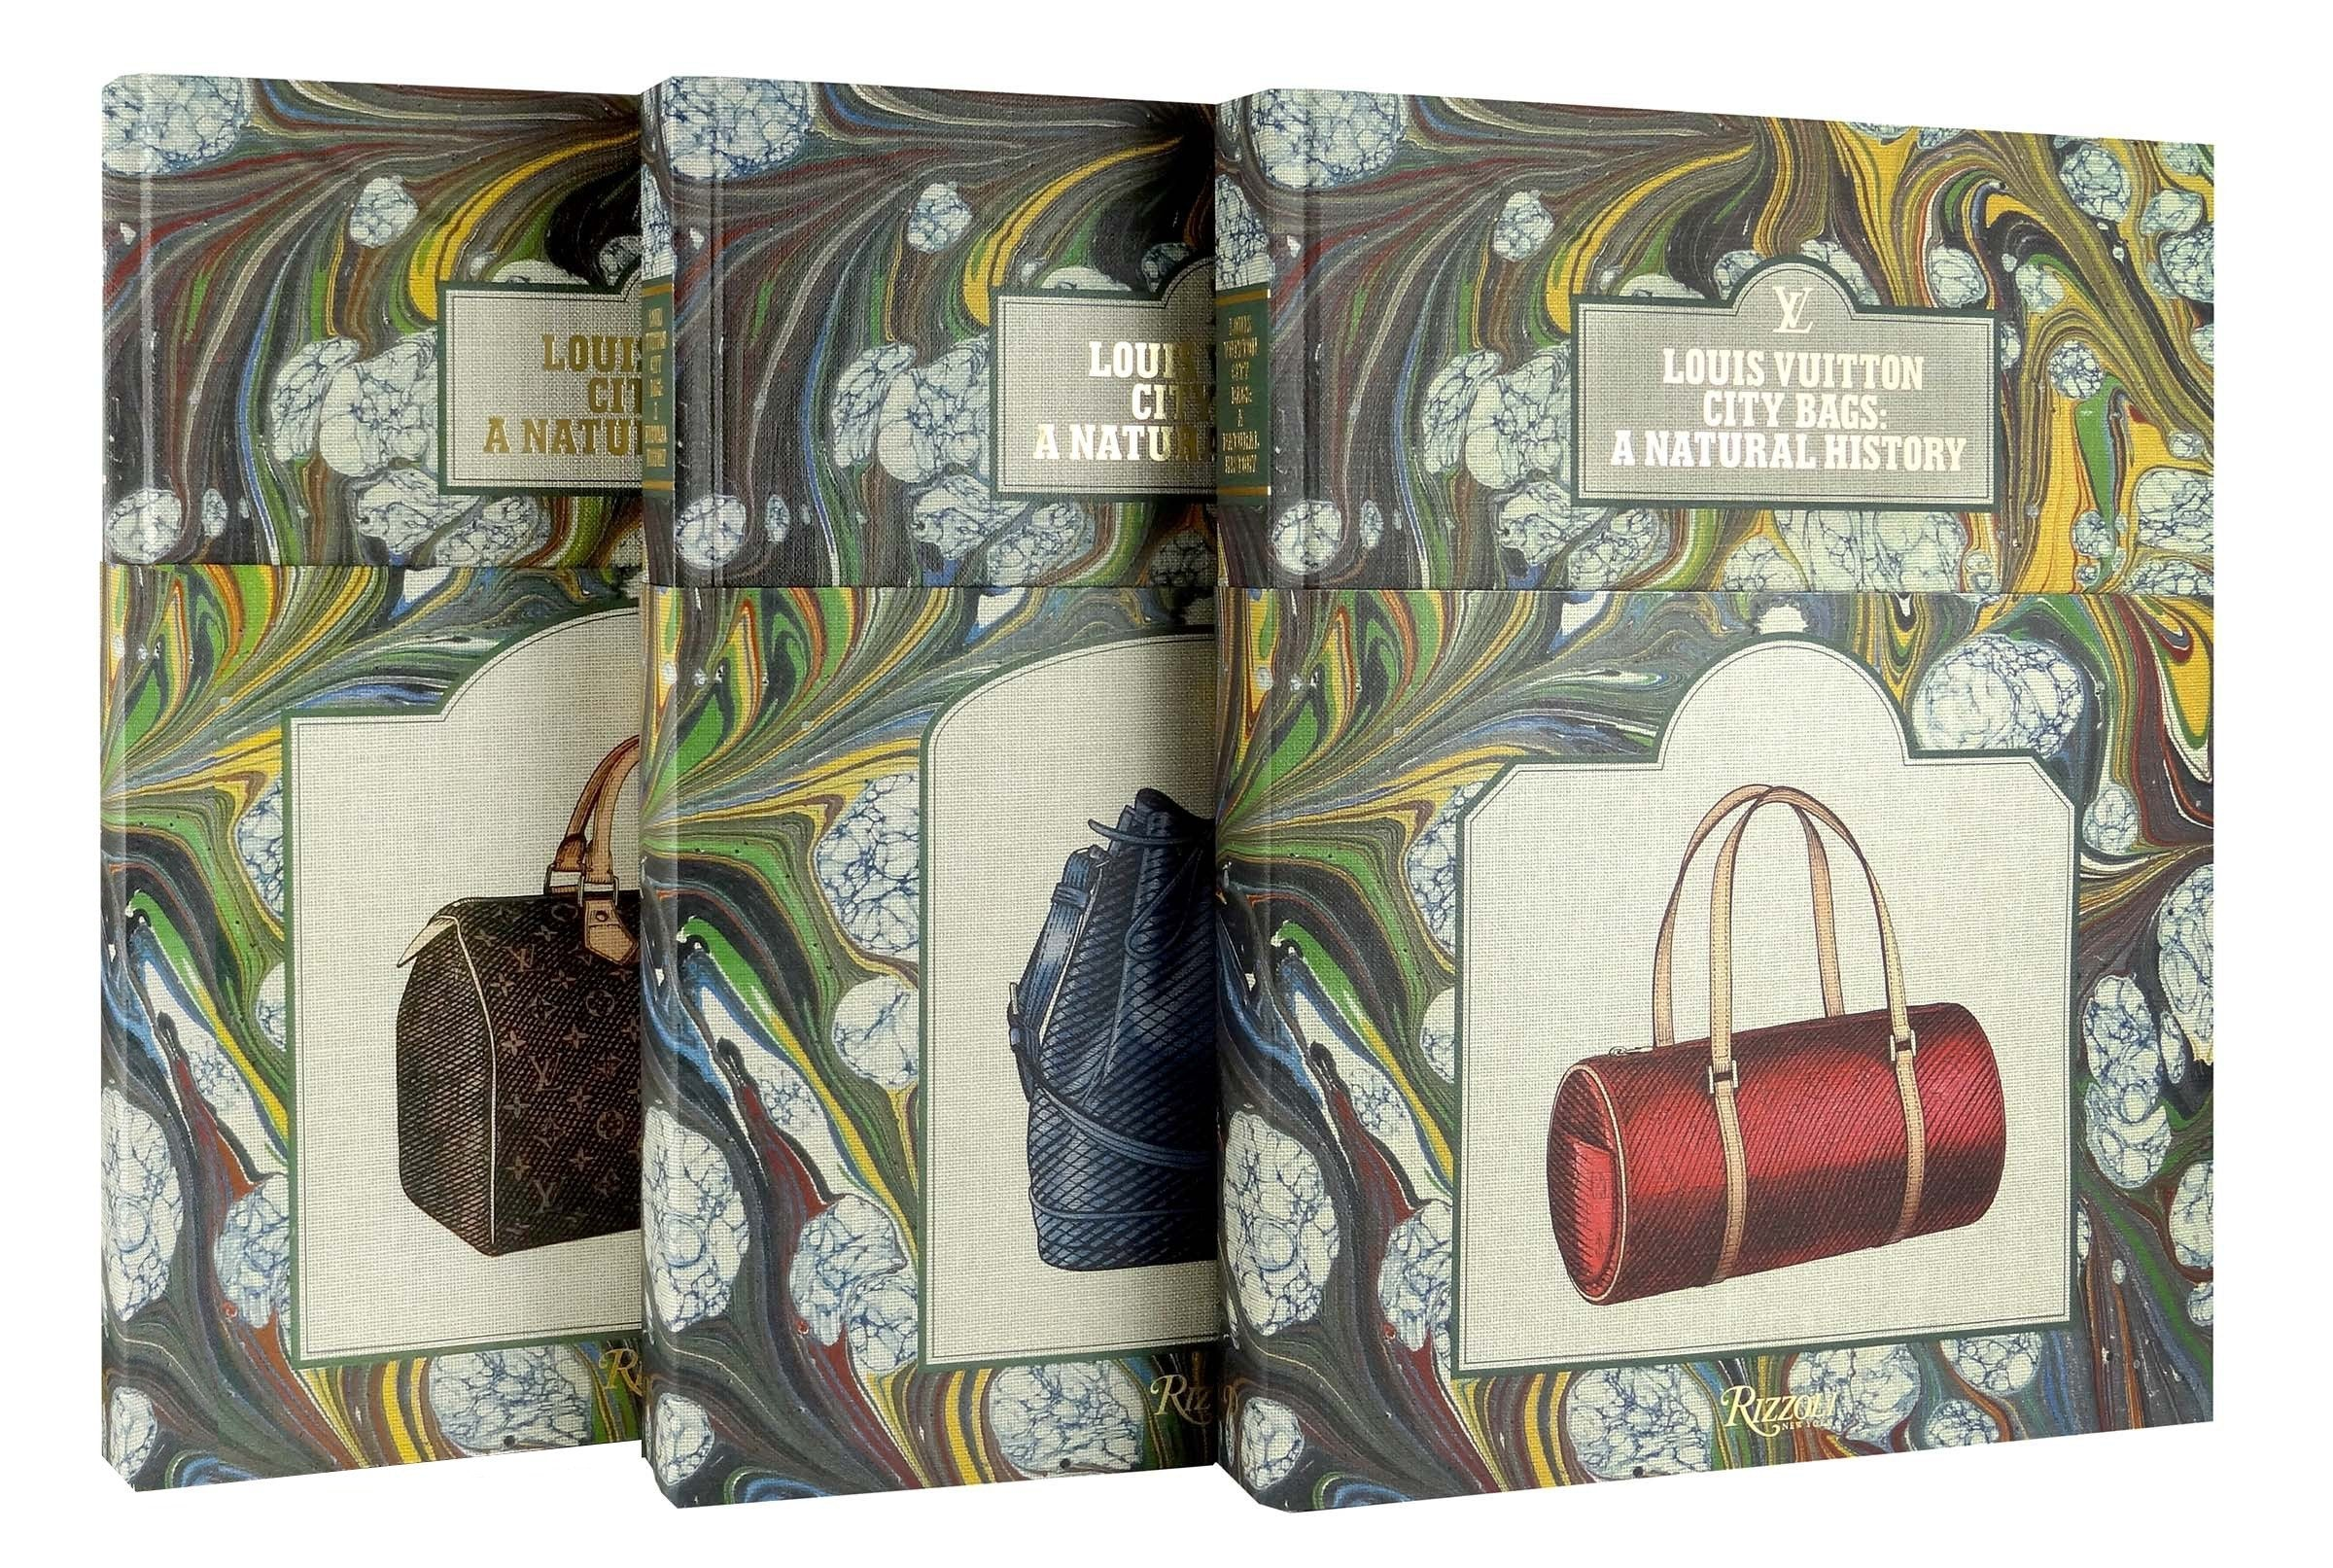 1f695b2128a ... LOUIS VUITTON CITY BAGS  A NATURAL HISTORY - ENGLISH VERSION ...